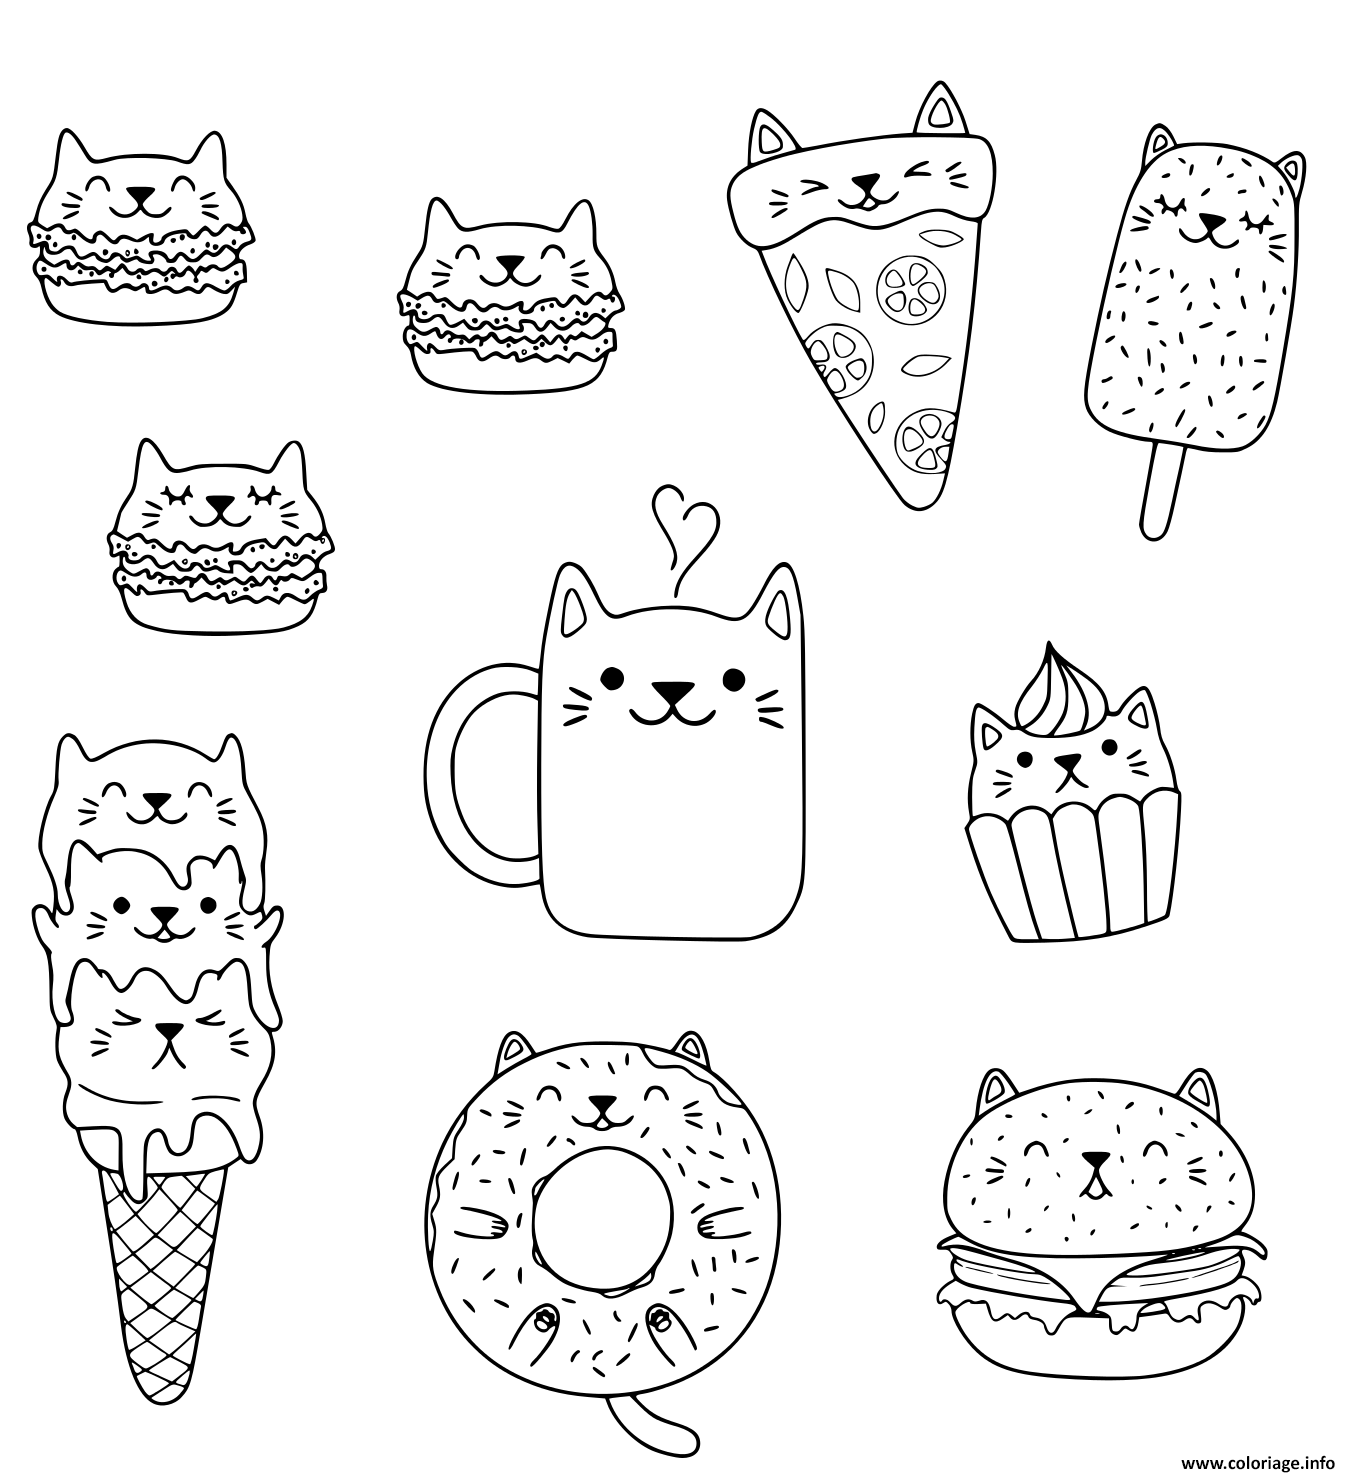 Coloriage Kawaii Chats Macarons Pizza Burger Ice Cream Donut